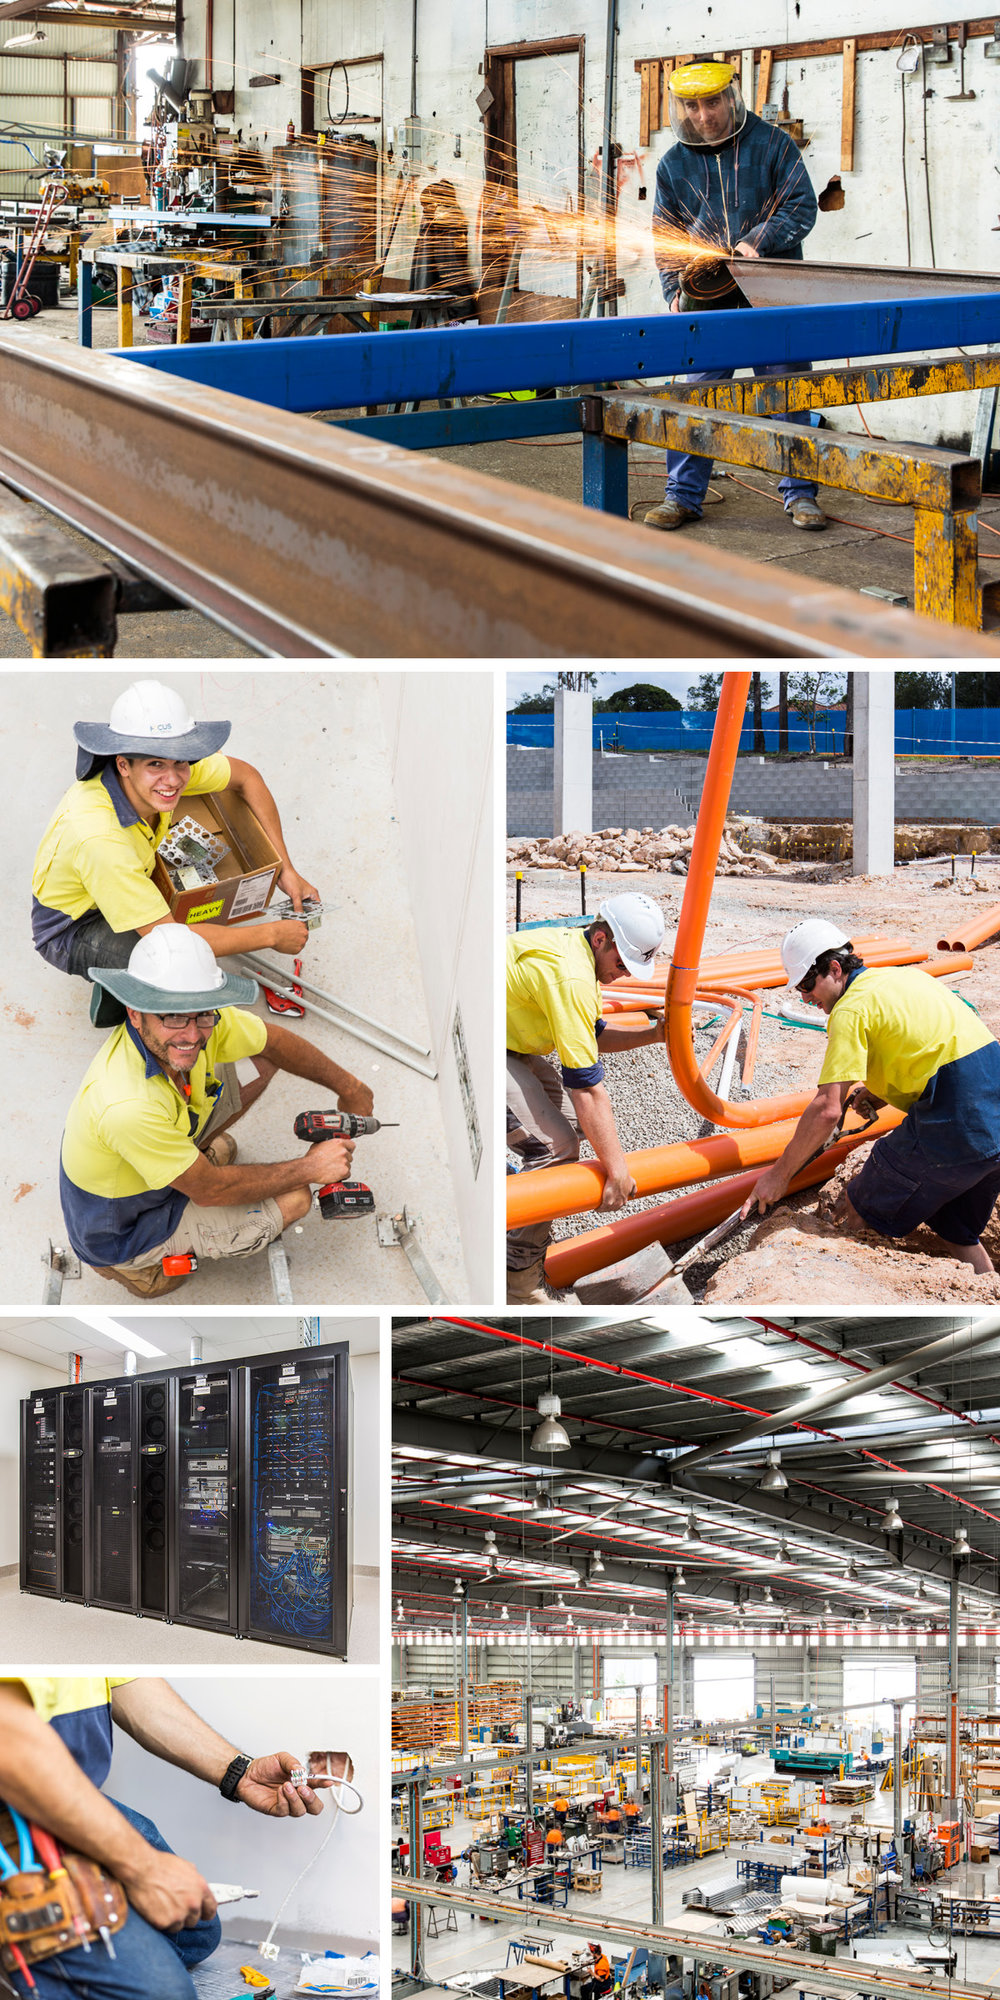 Brisbane-AIPP-Accredited-Professional-Photographer-Industrial-and-Construction-Photography.jpg